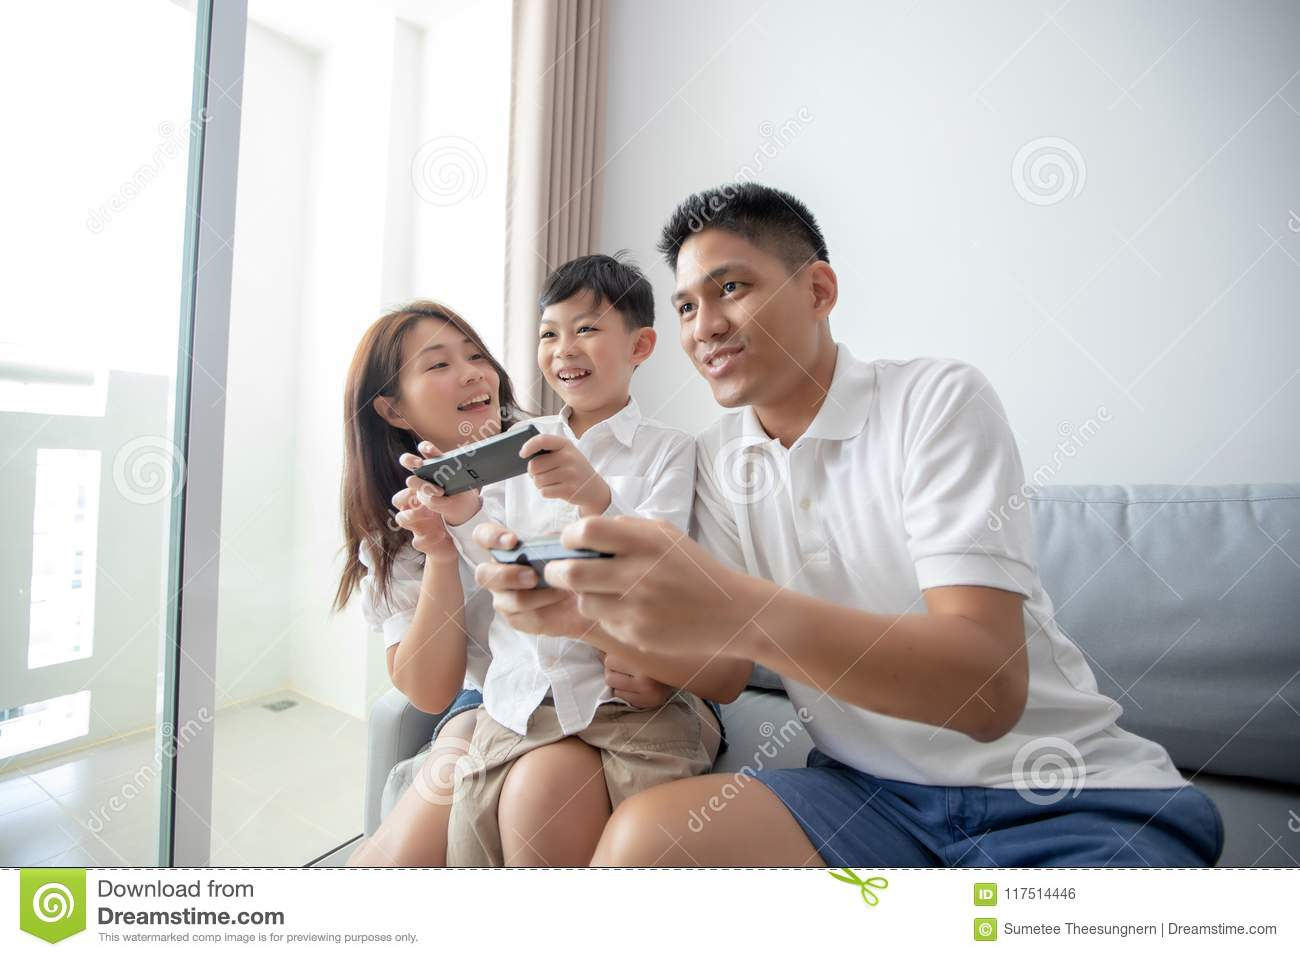 Asian family having fun playing computer console games together, Father and son have the handset controllers and the mother is ch